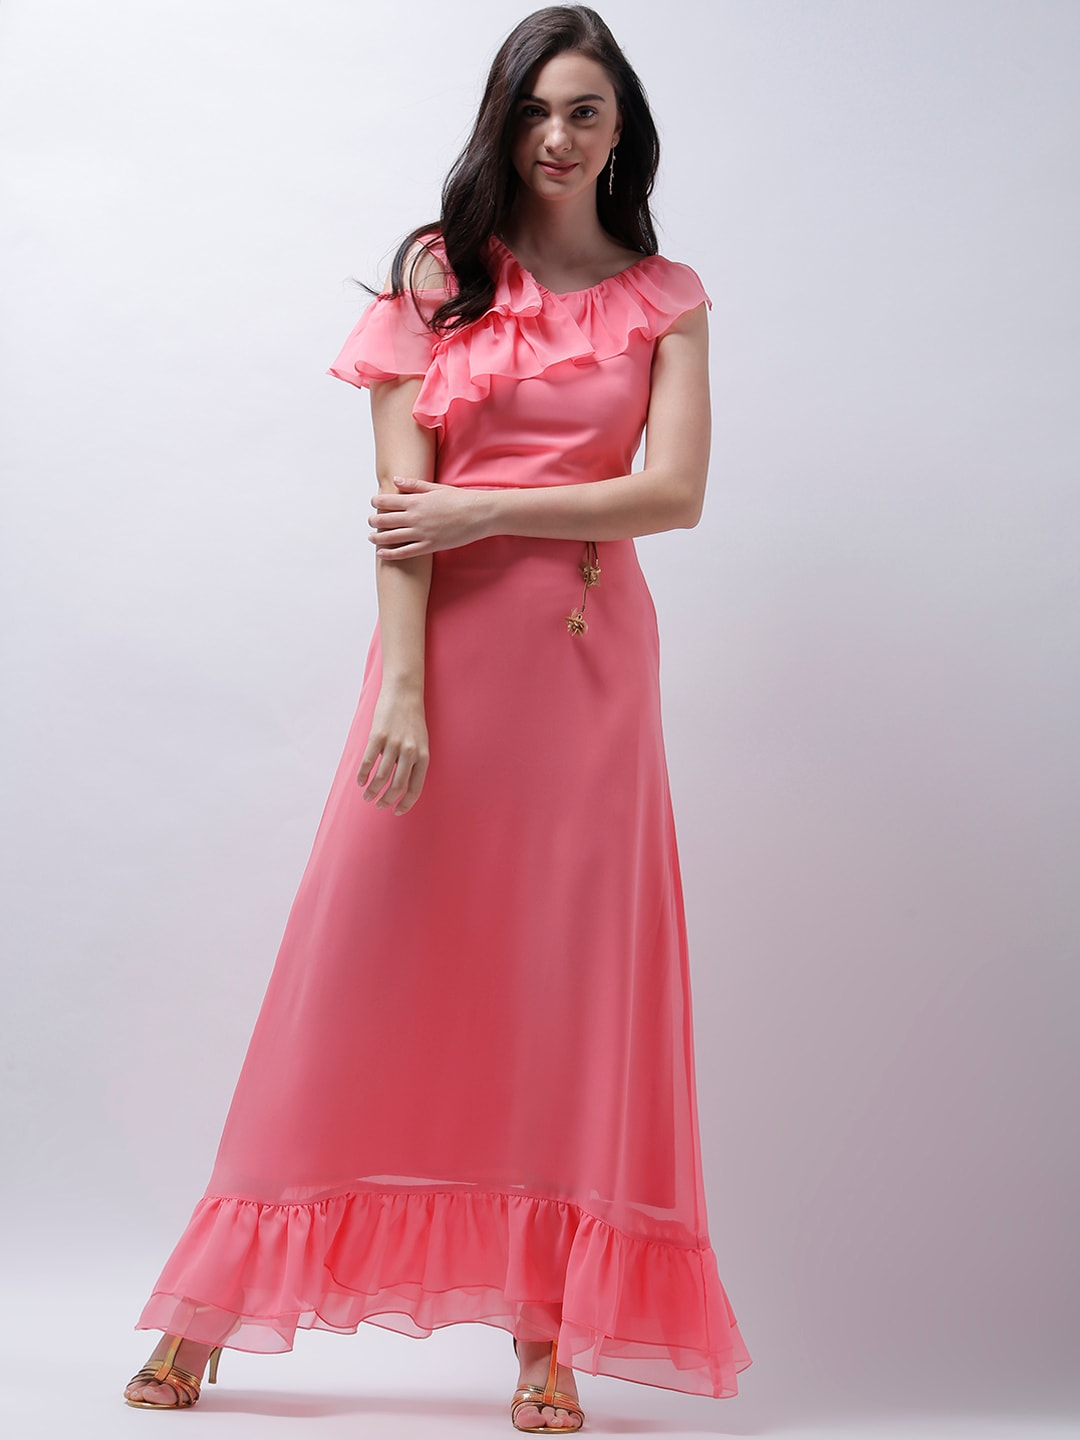 bc24a8dfd89f5 Pink Dress Women Dresses Hand - Buy Pink Dress Women Dresses Hand online in  India